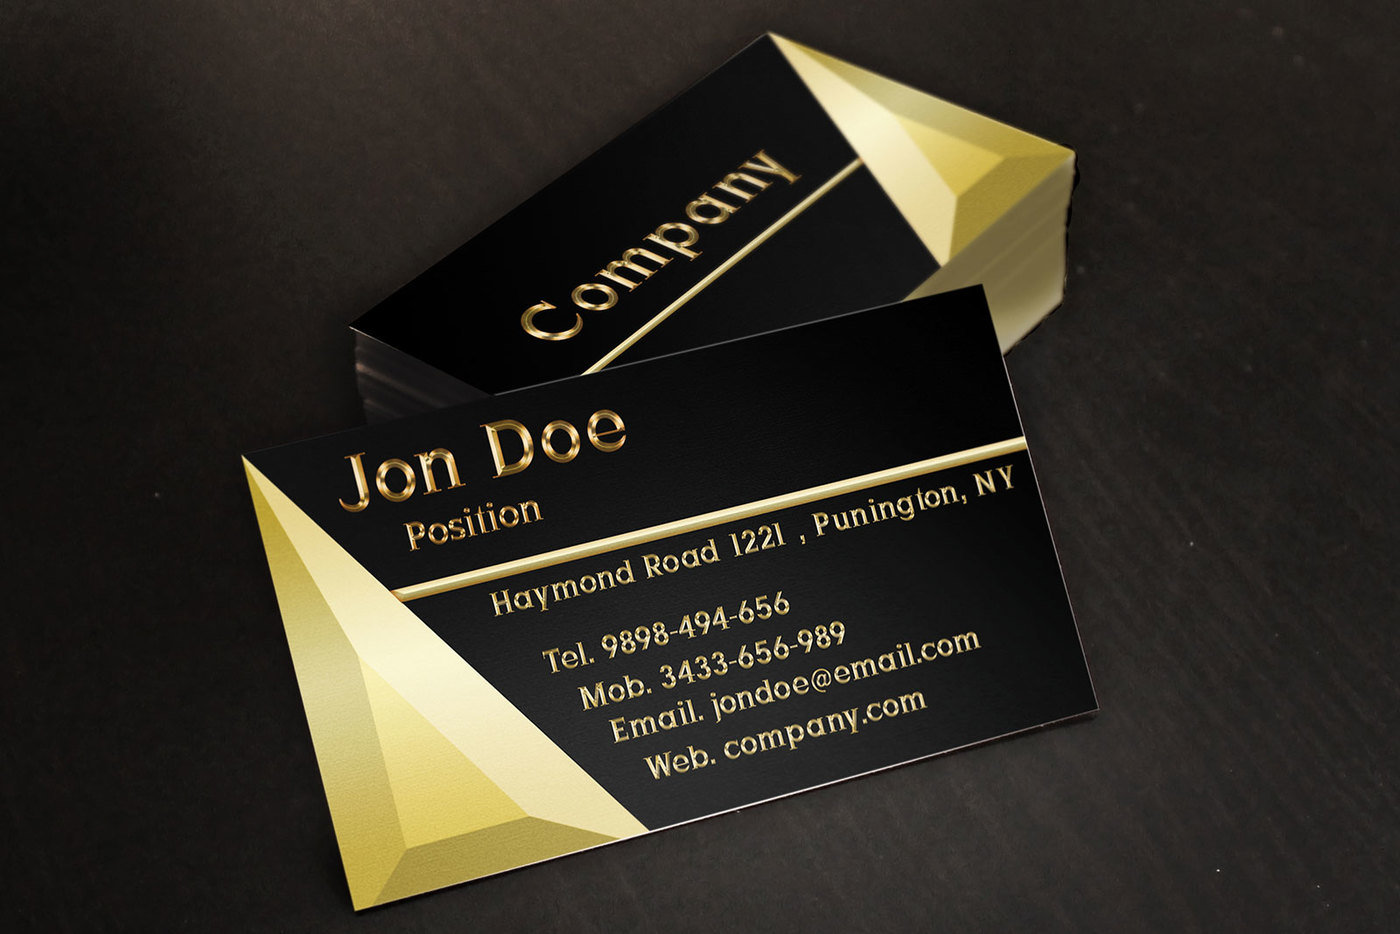 Black and gold jewelry store business card template by borce black and gold jewelry store business card template by borce markoski at coroflot reheart